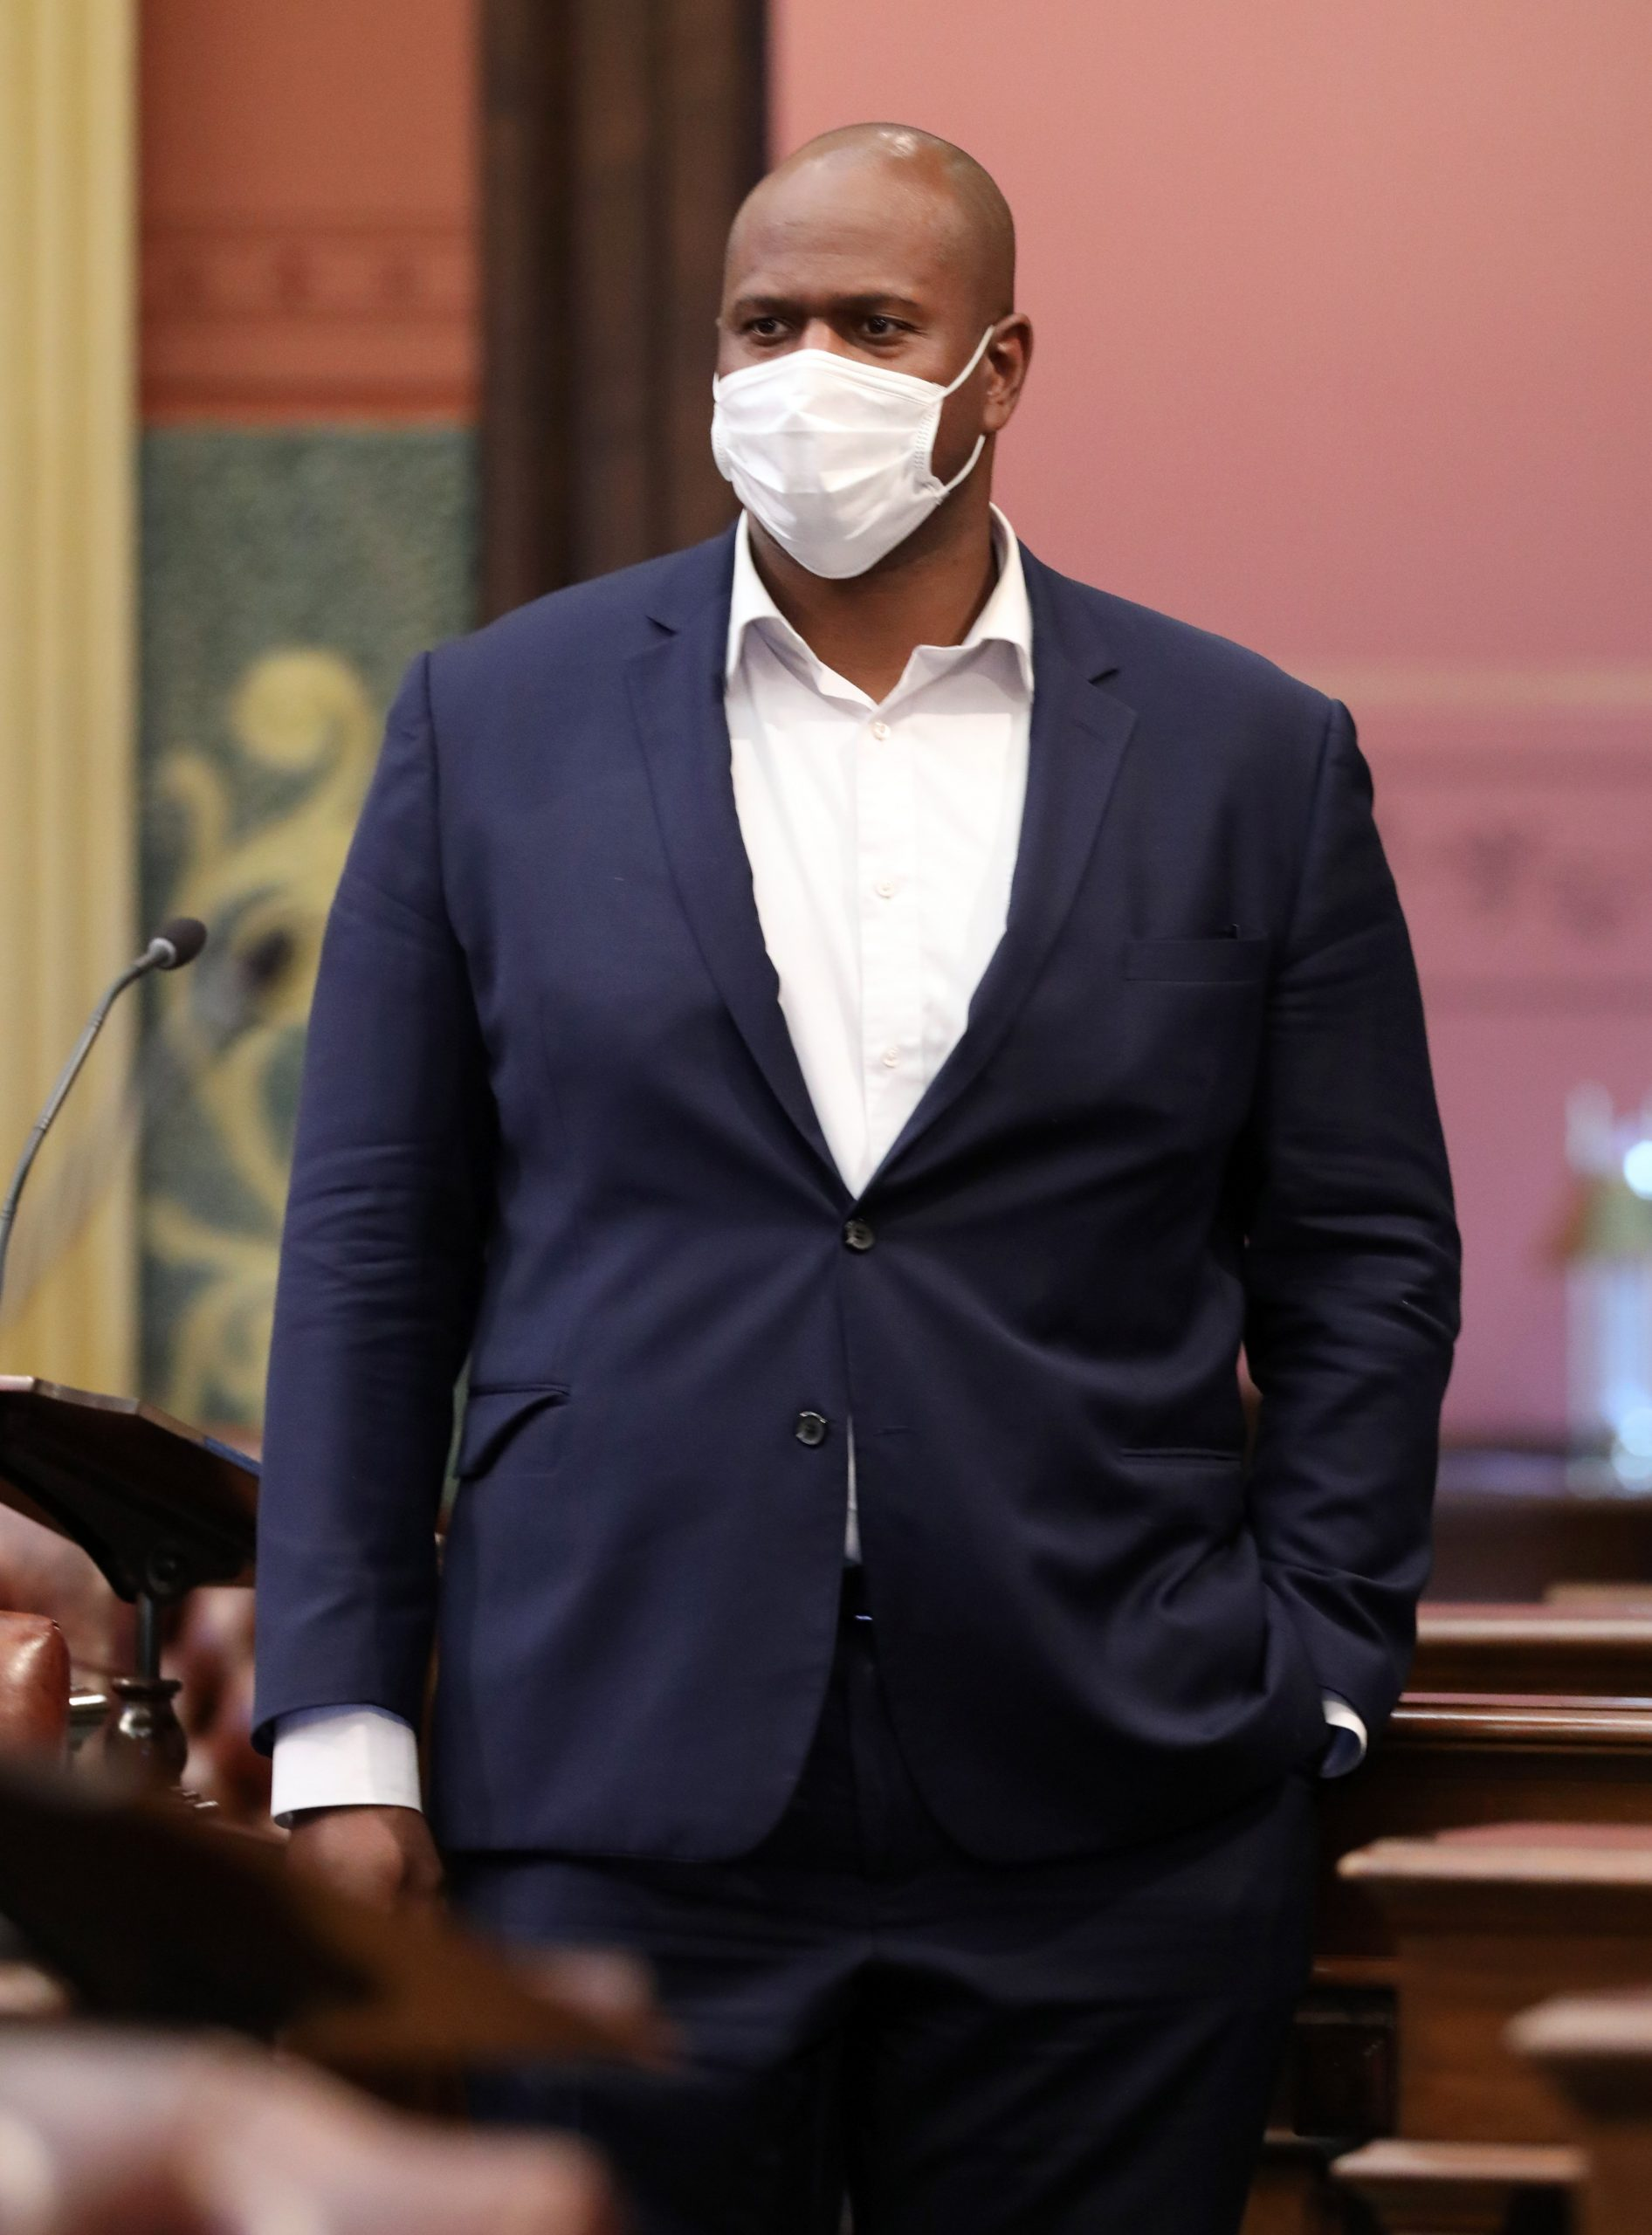 State Rep. Joe Tate (D-Detroit) joining other House Dems in breaking required dress code to protest Republican refusal to require masks on the House floor at the Capitol in Lansing on Oct. 13, 2020.